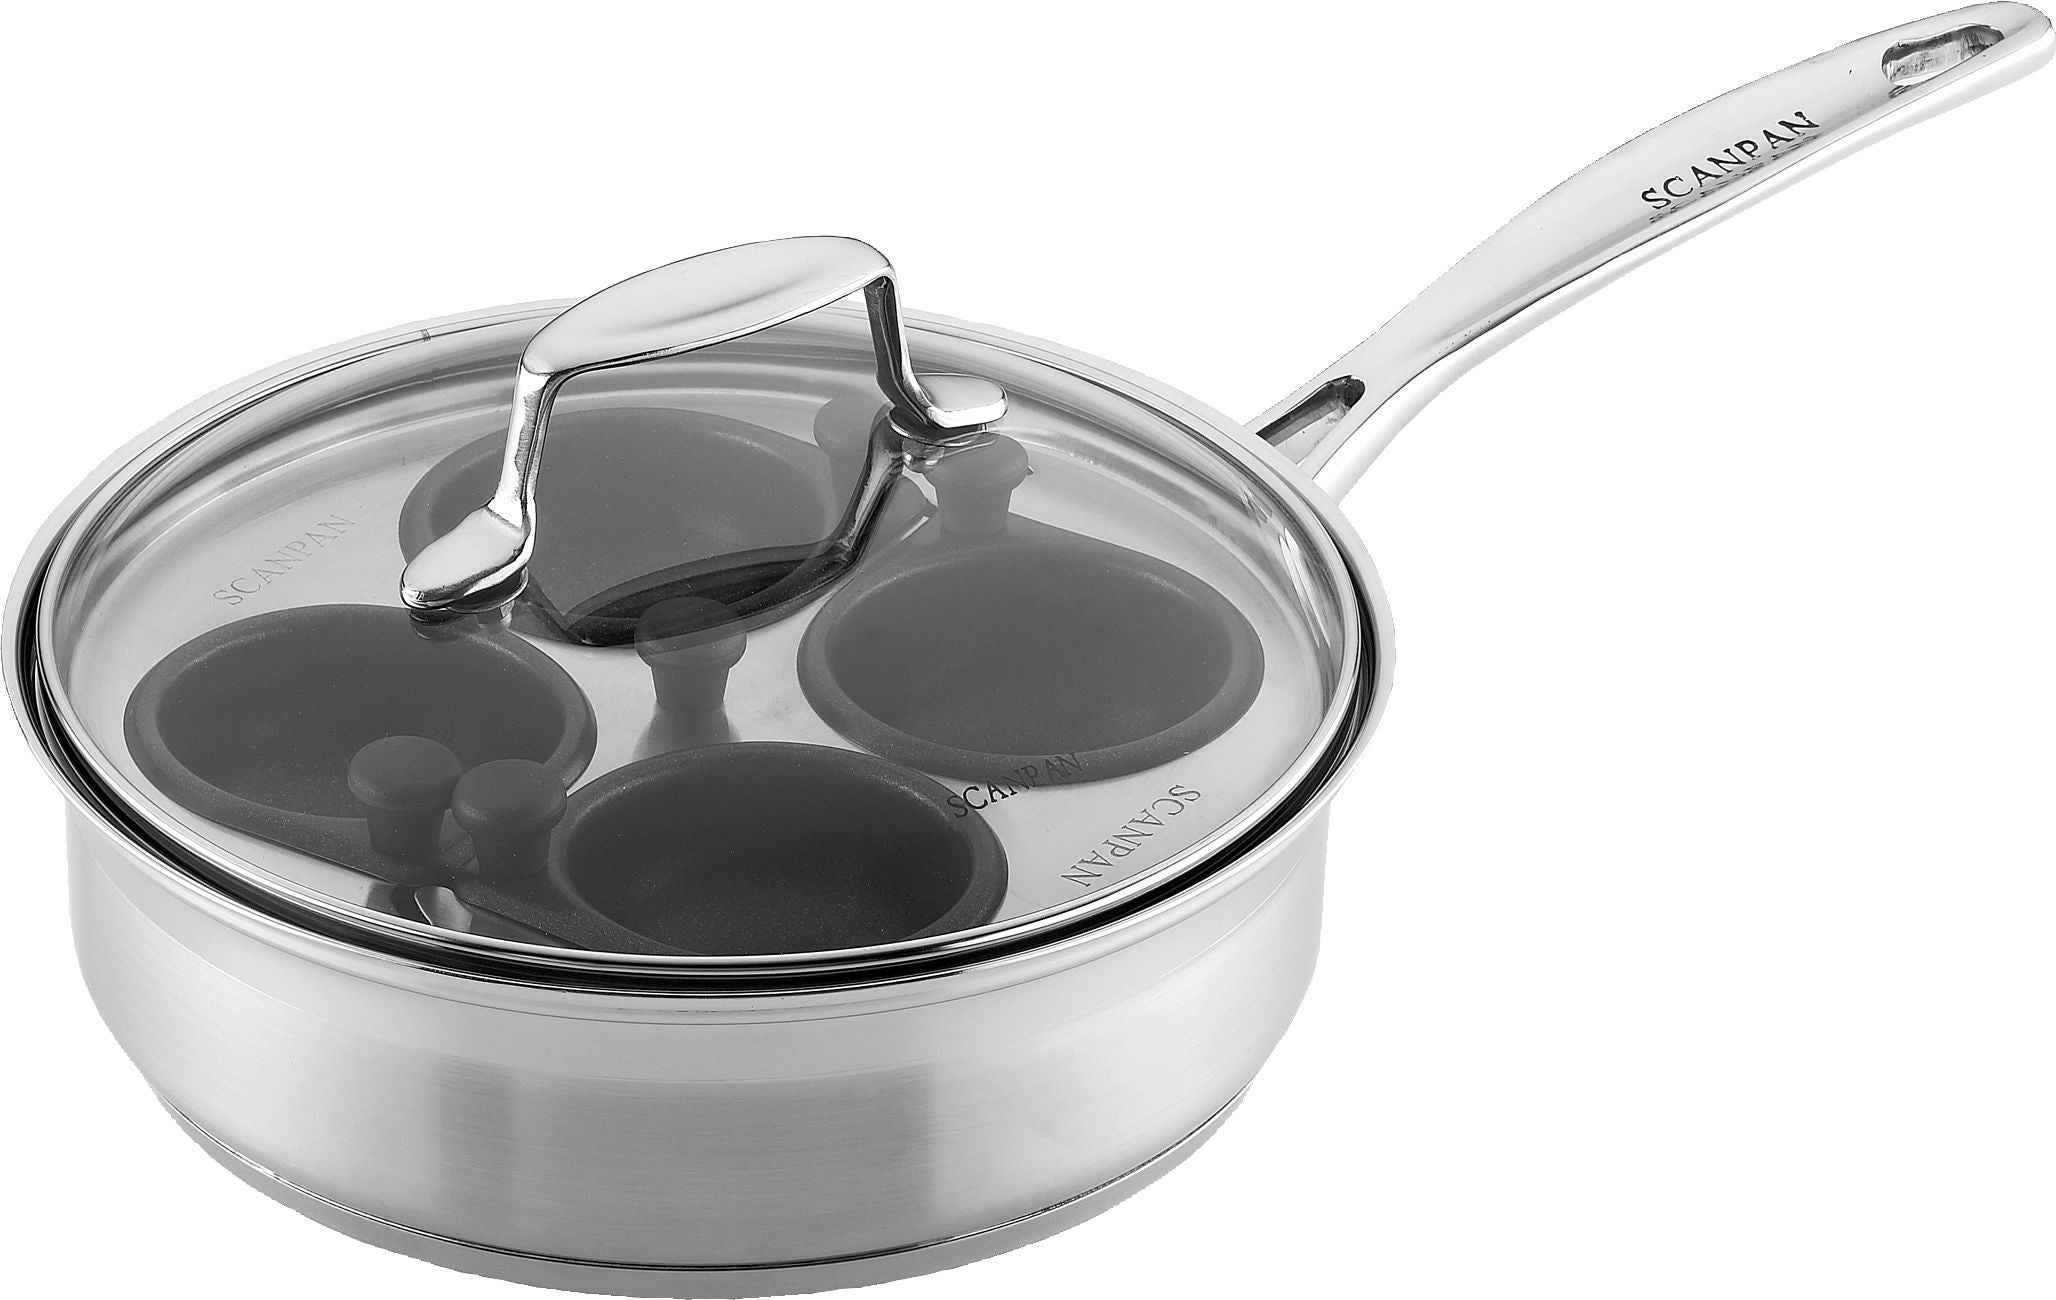 4 HOLE EGG POACHER COOKING PAN WITH CUP /& LID POACH NON STICK LID